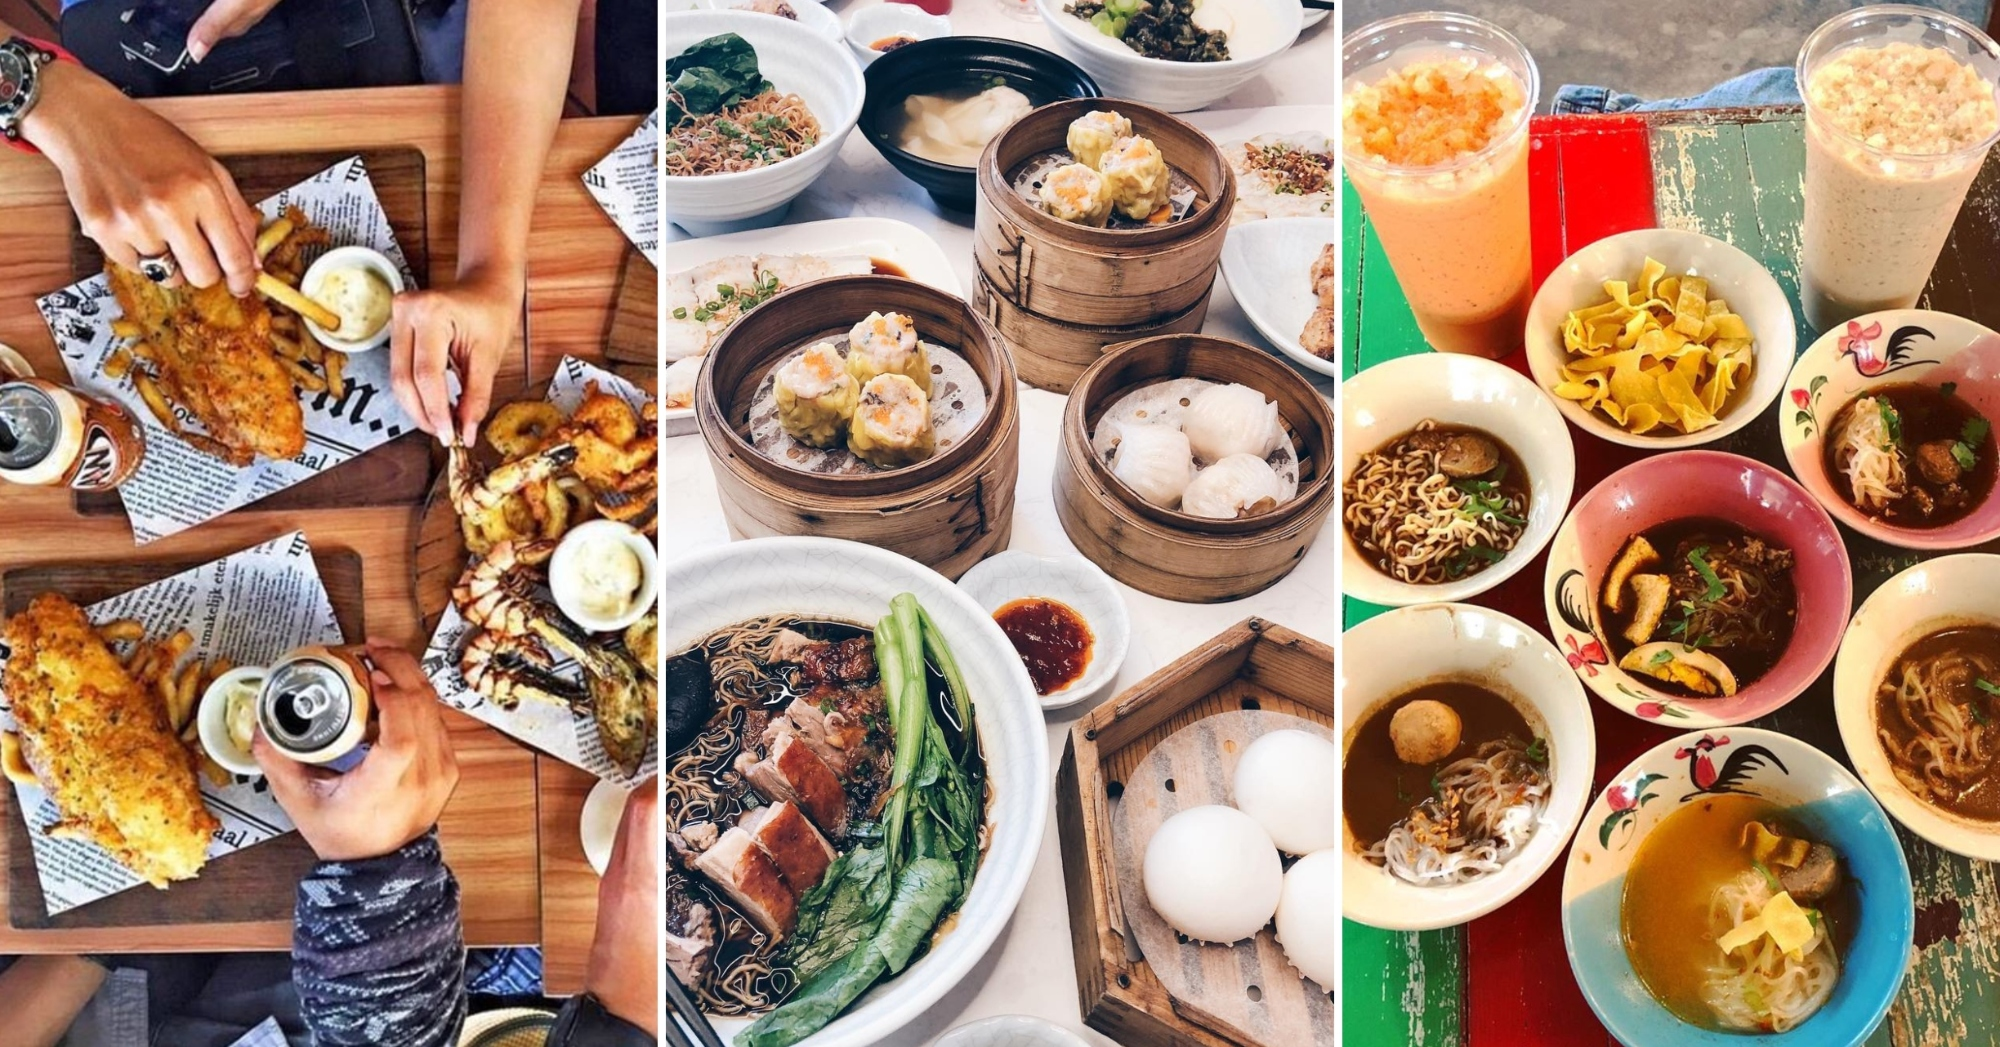 10 Popular Halal Eateries In Bugis That Are Open For Dine In During Phase 2